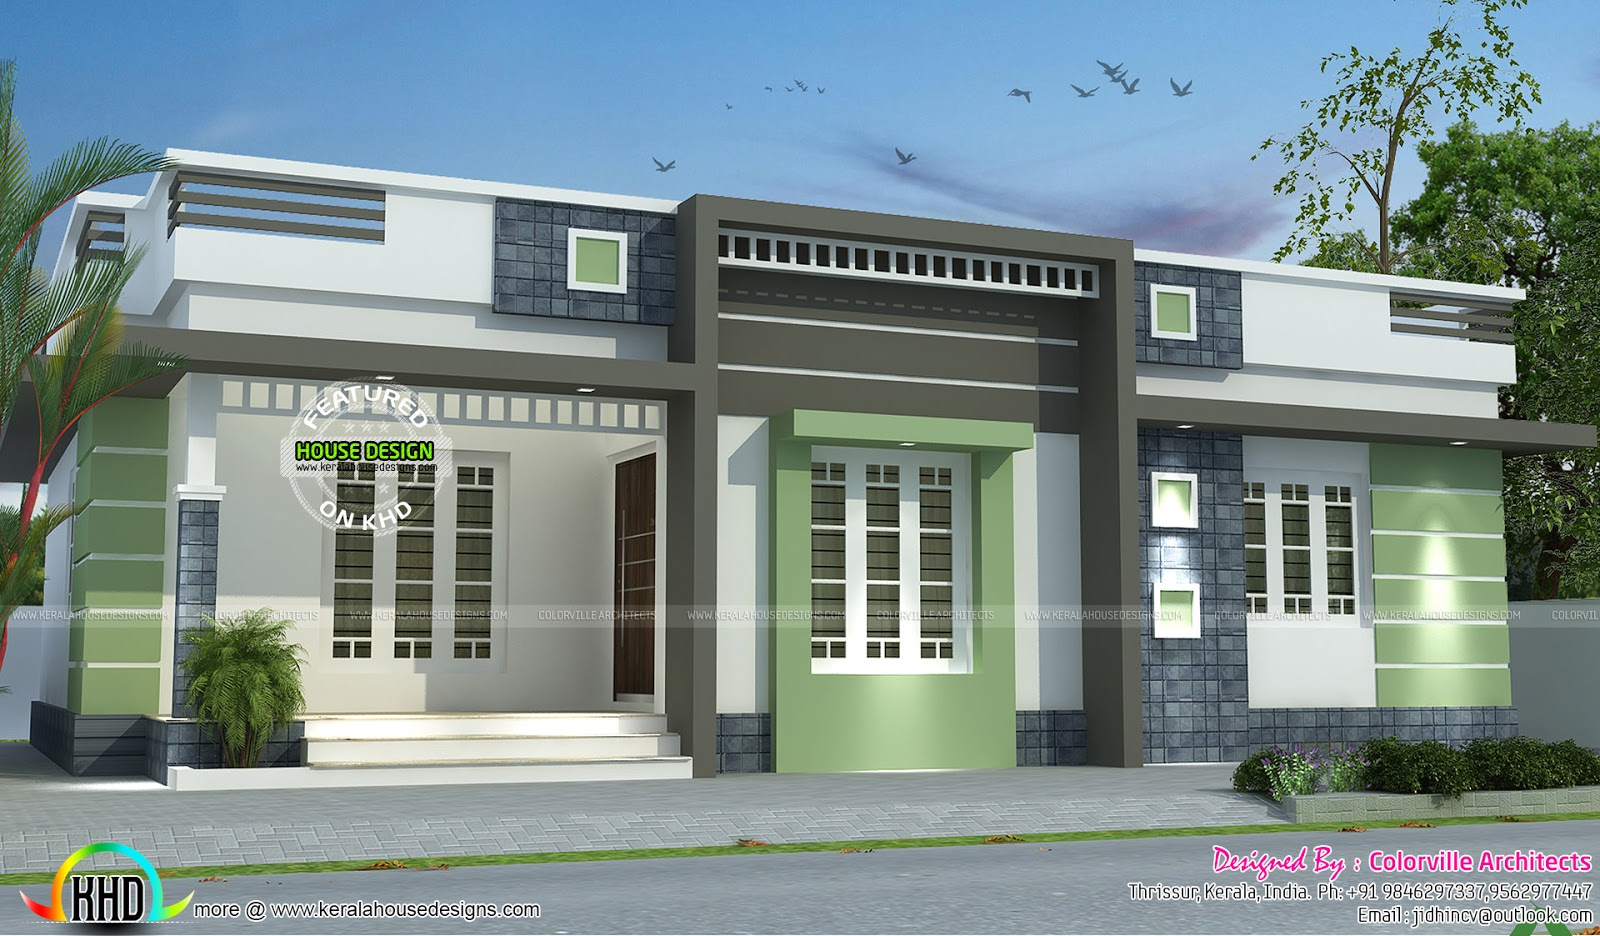 One floor box model home design kerala home design and for House design pic